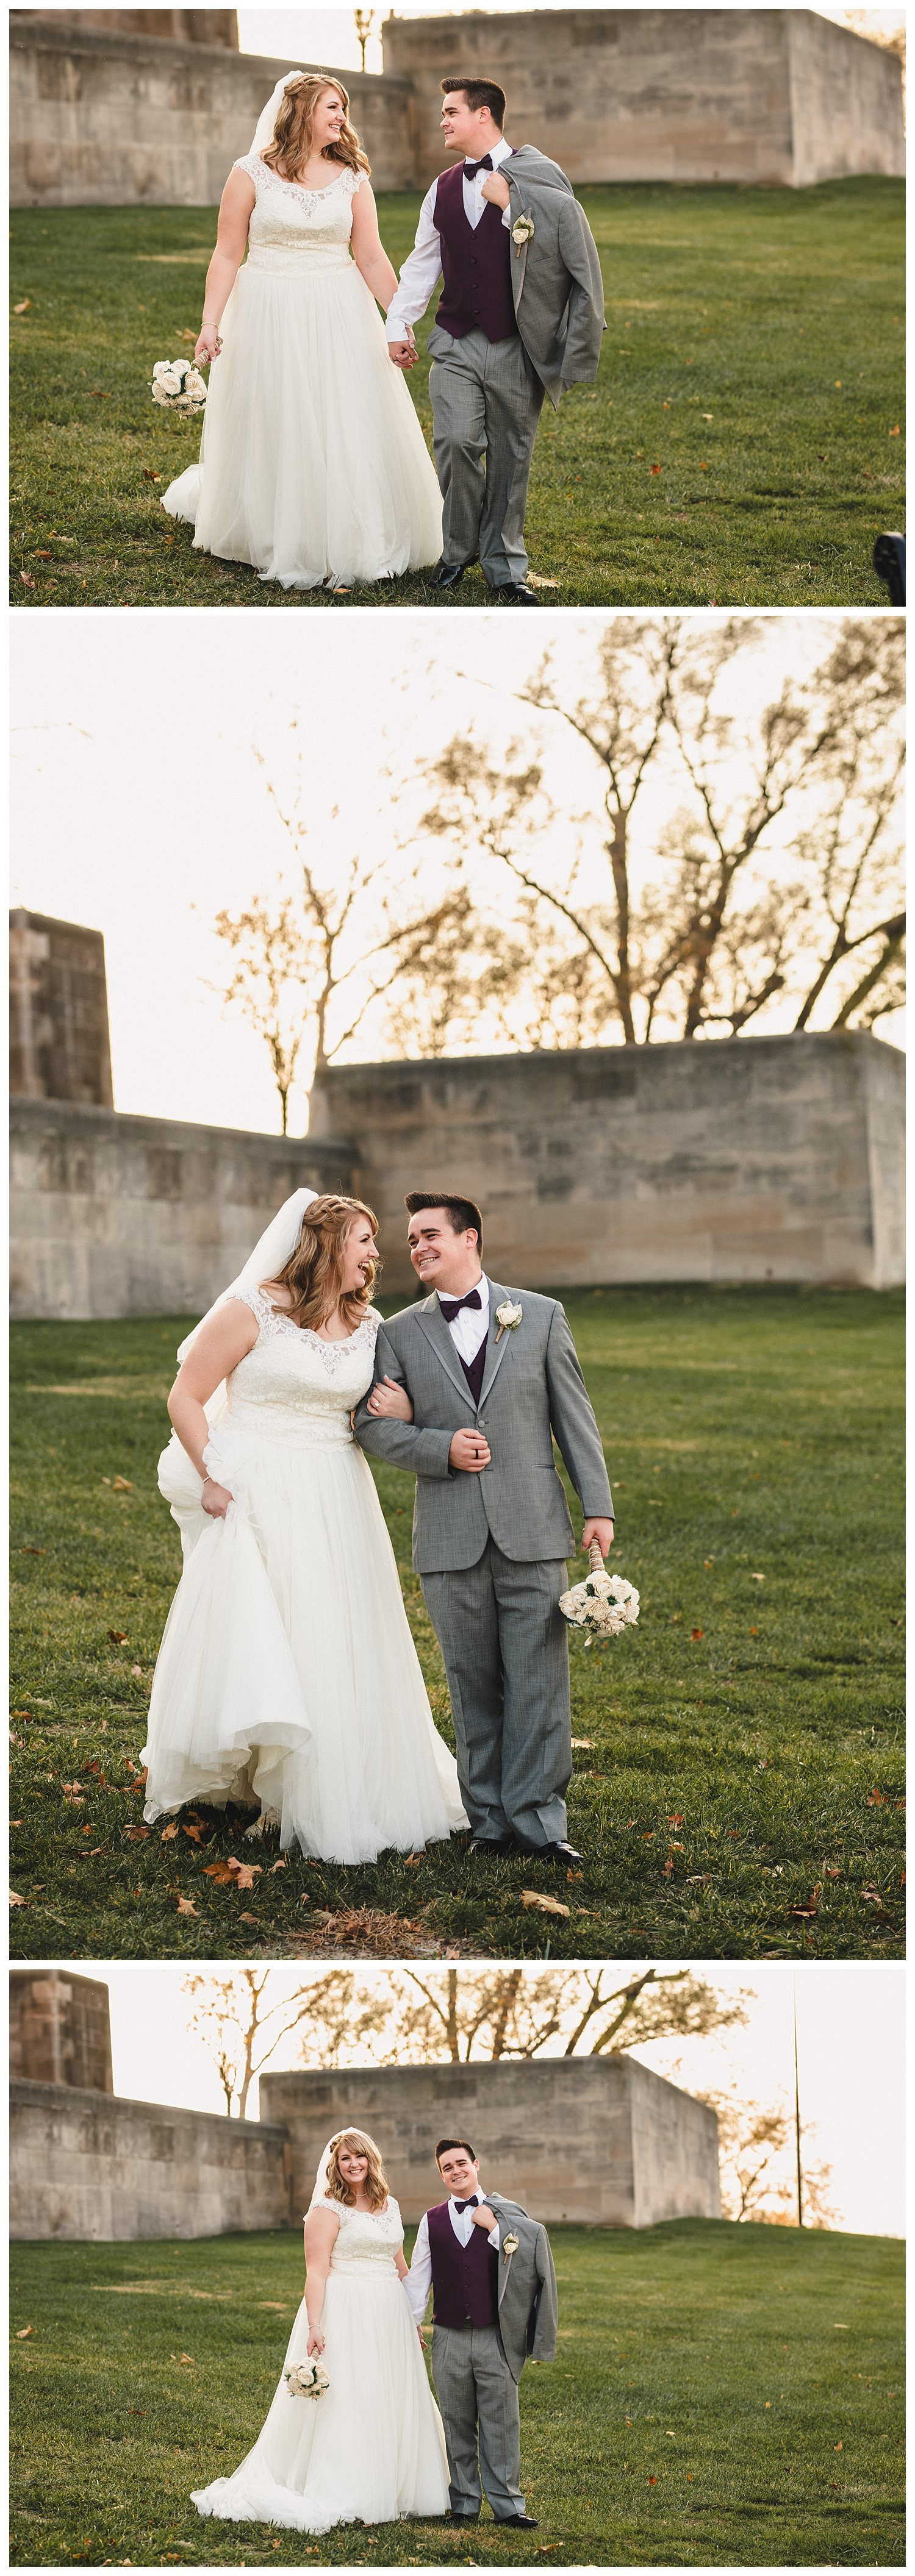 Kelsey_Diane_Photography_Loose_Mansion_Wedding_Photography_Kansas_City_Victor_Lyndsay_0368.jpg